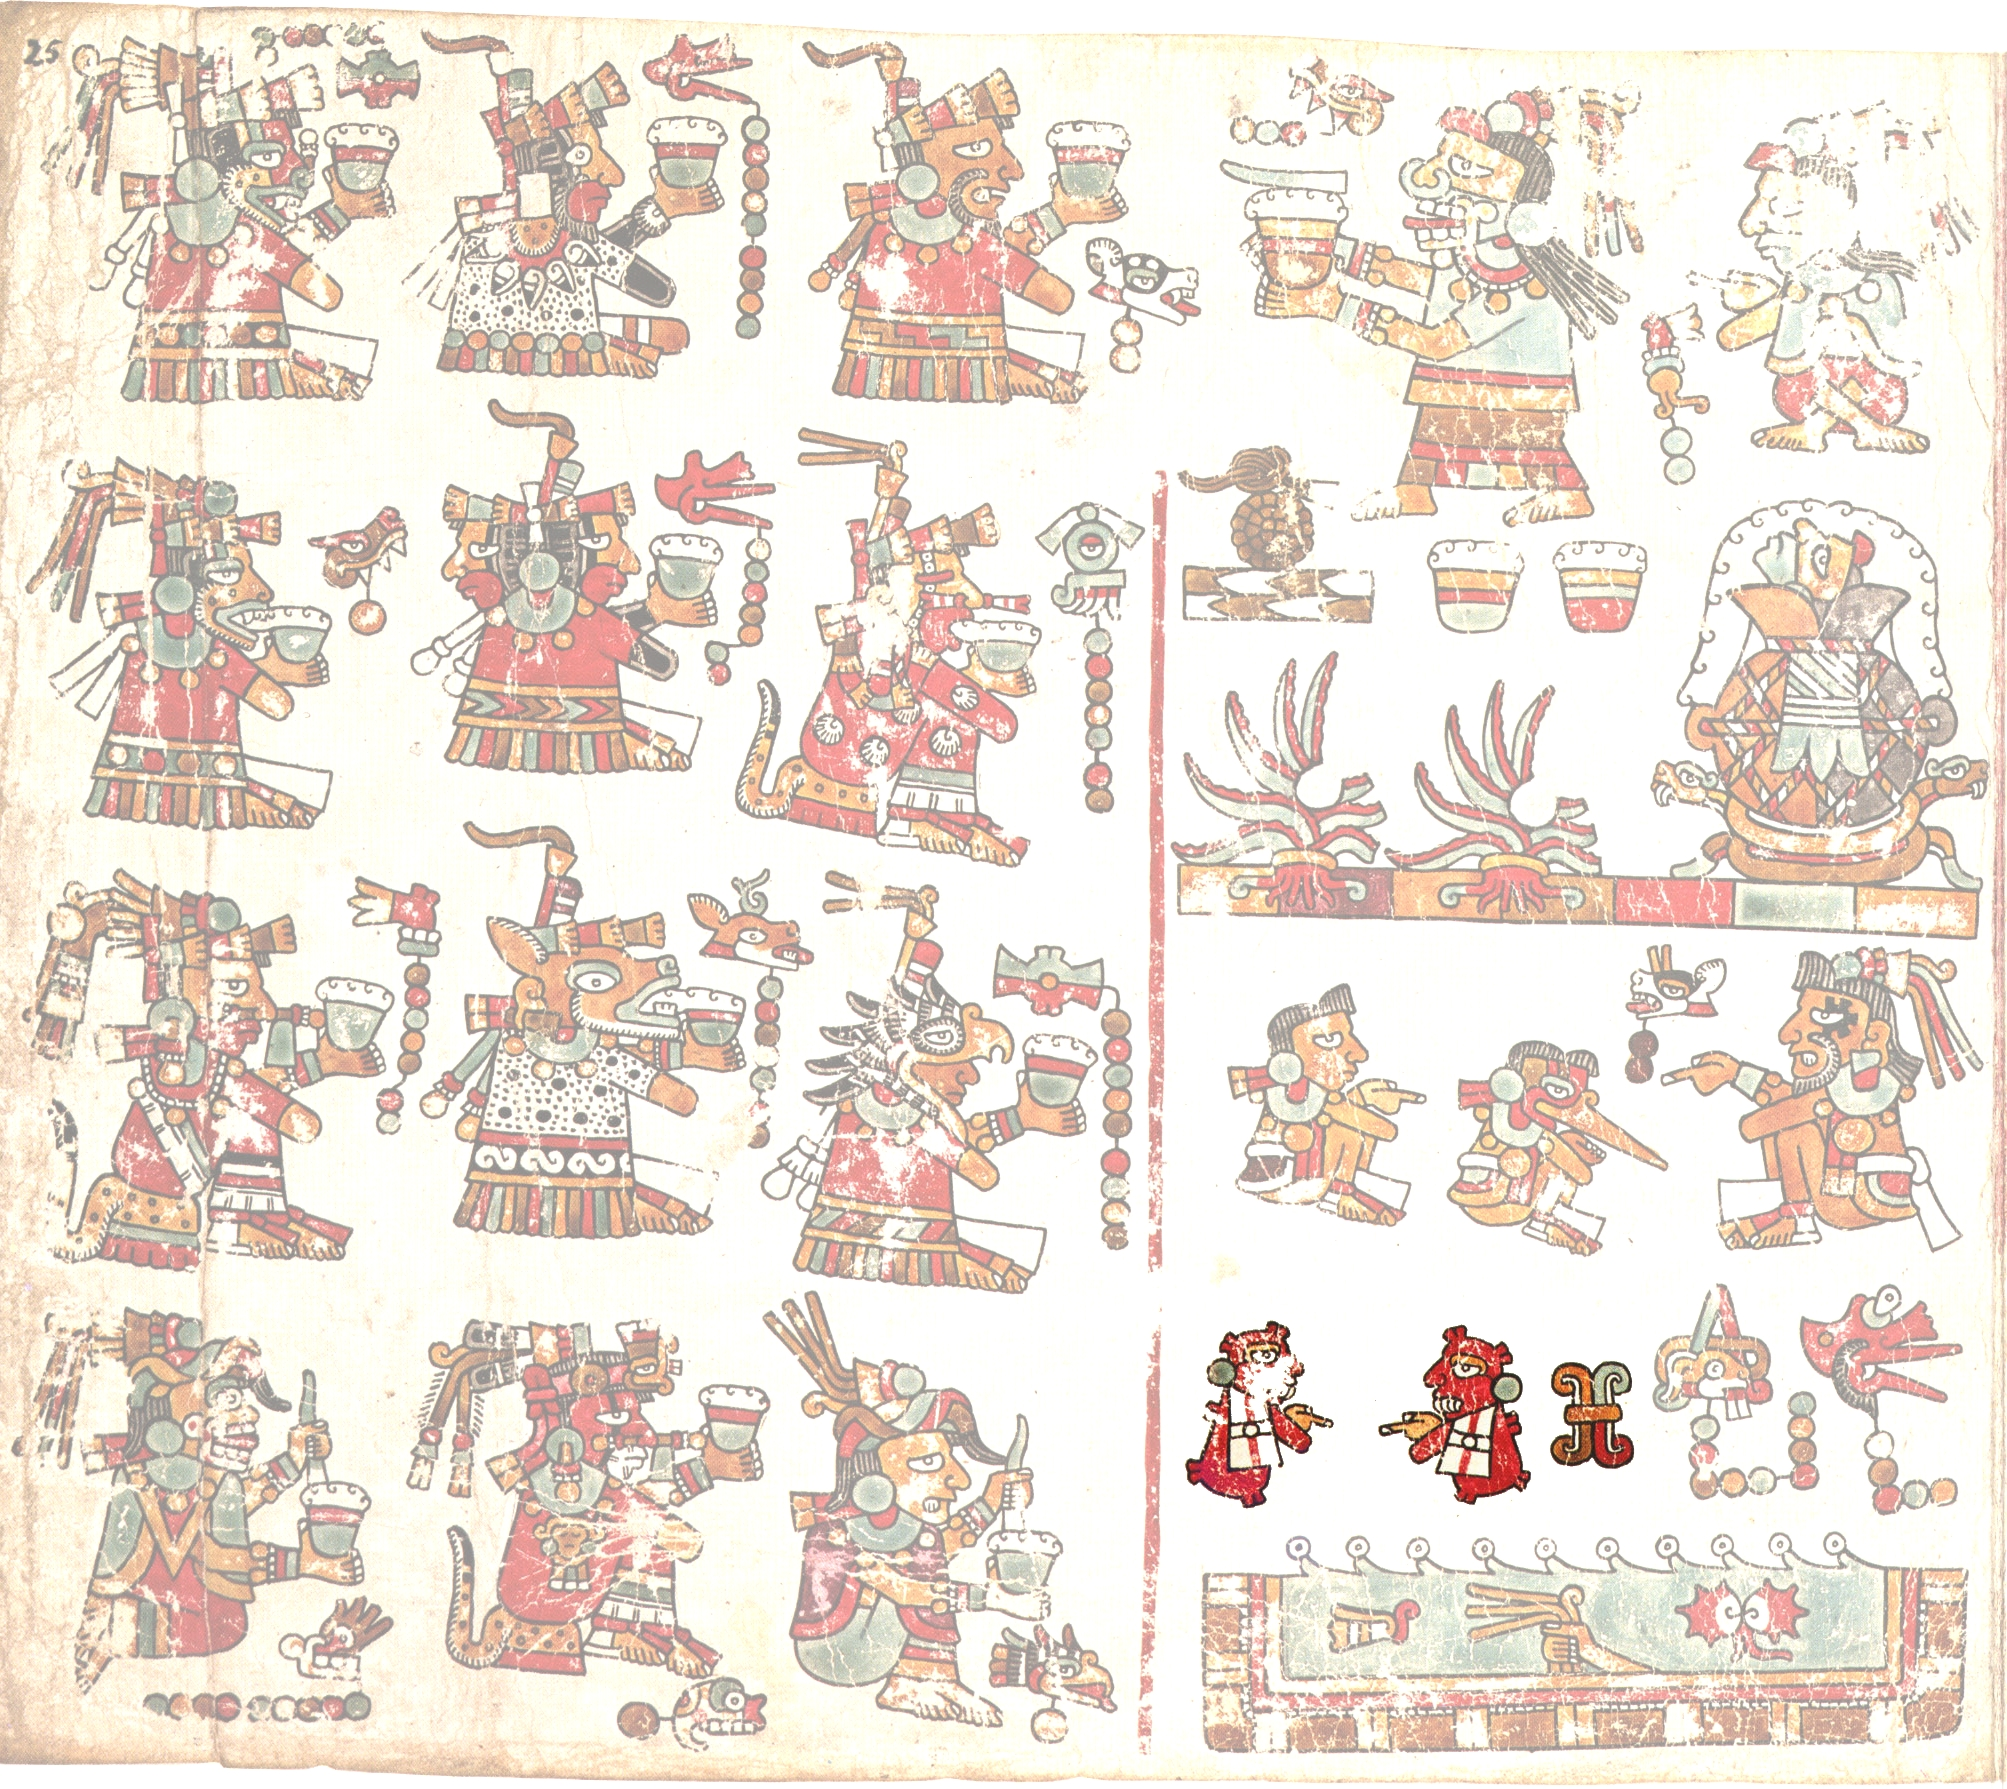 FIGURE 21. Page 25 of the Codex Vienna.